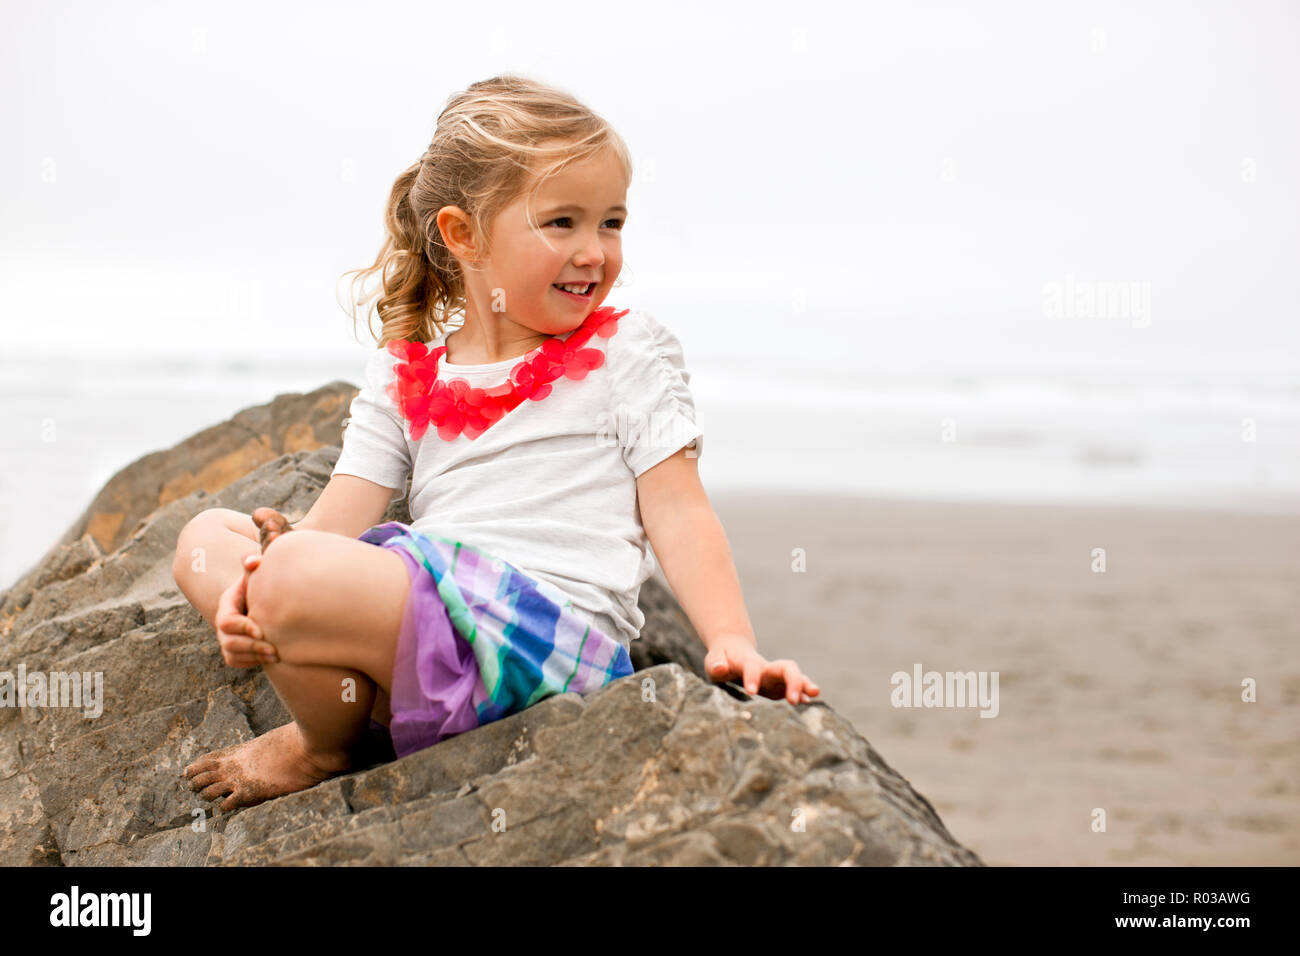 Smiling young girl sitting on a rock on a beach. Stock Photo